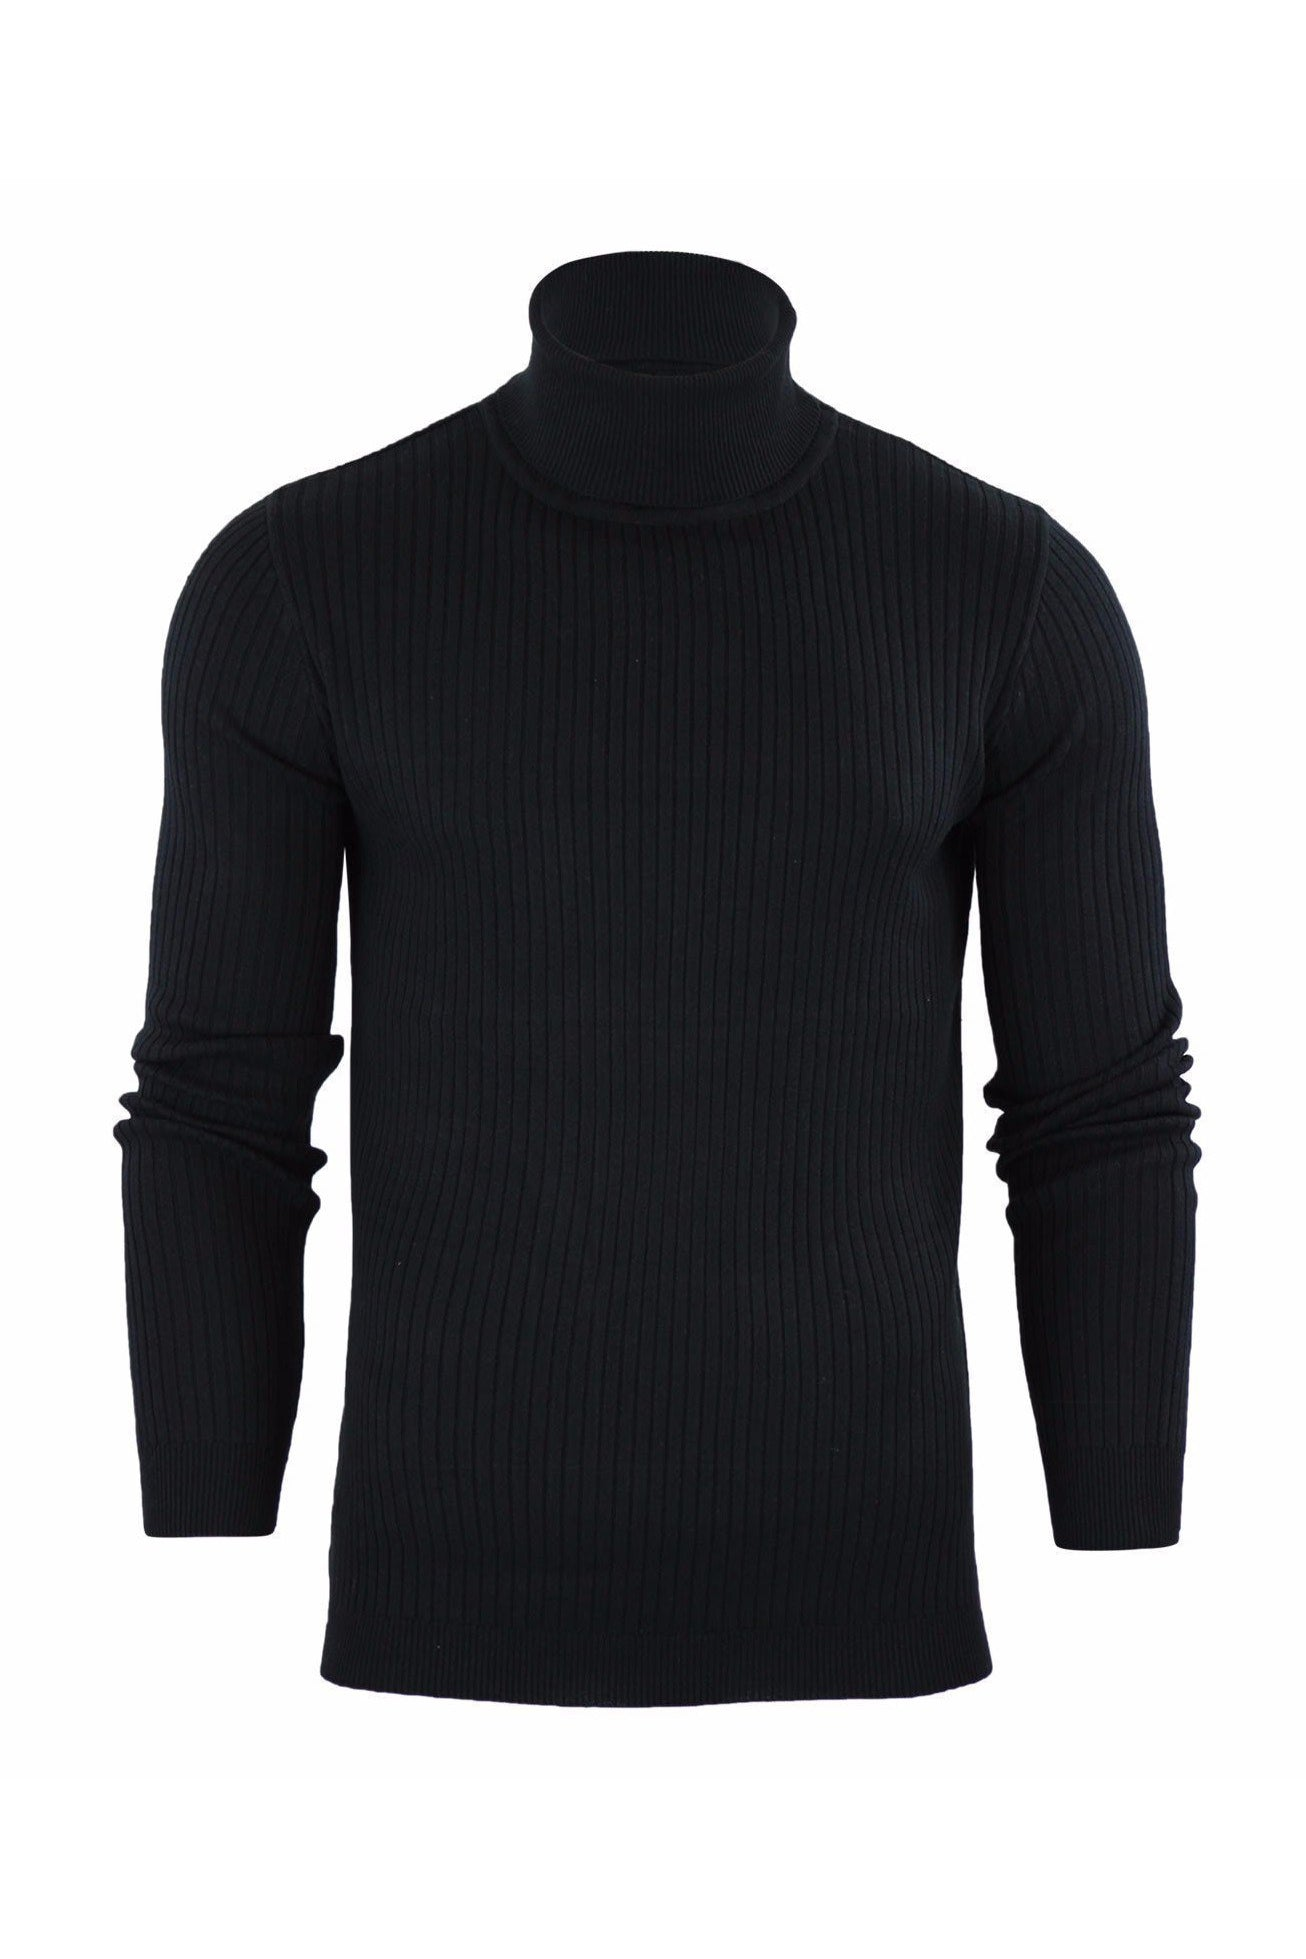 Ribbed Roll Neck Lightweight Knit Black